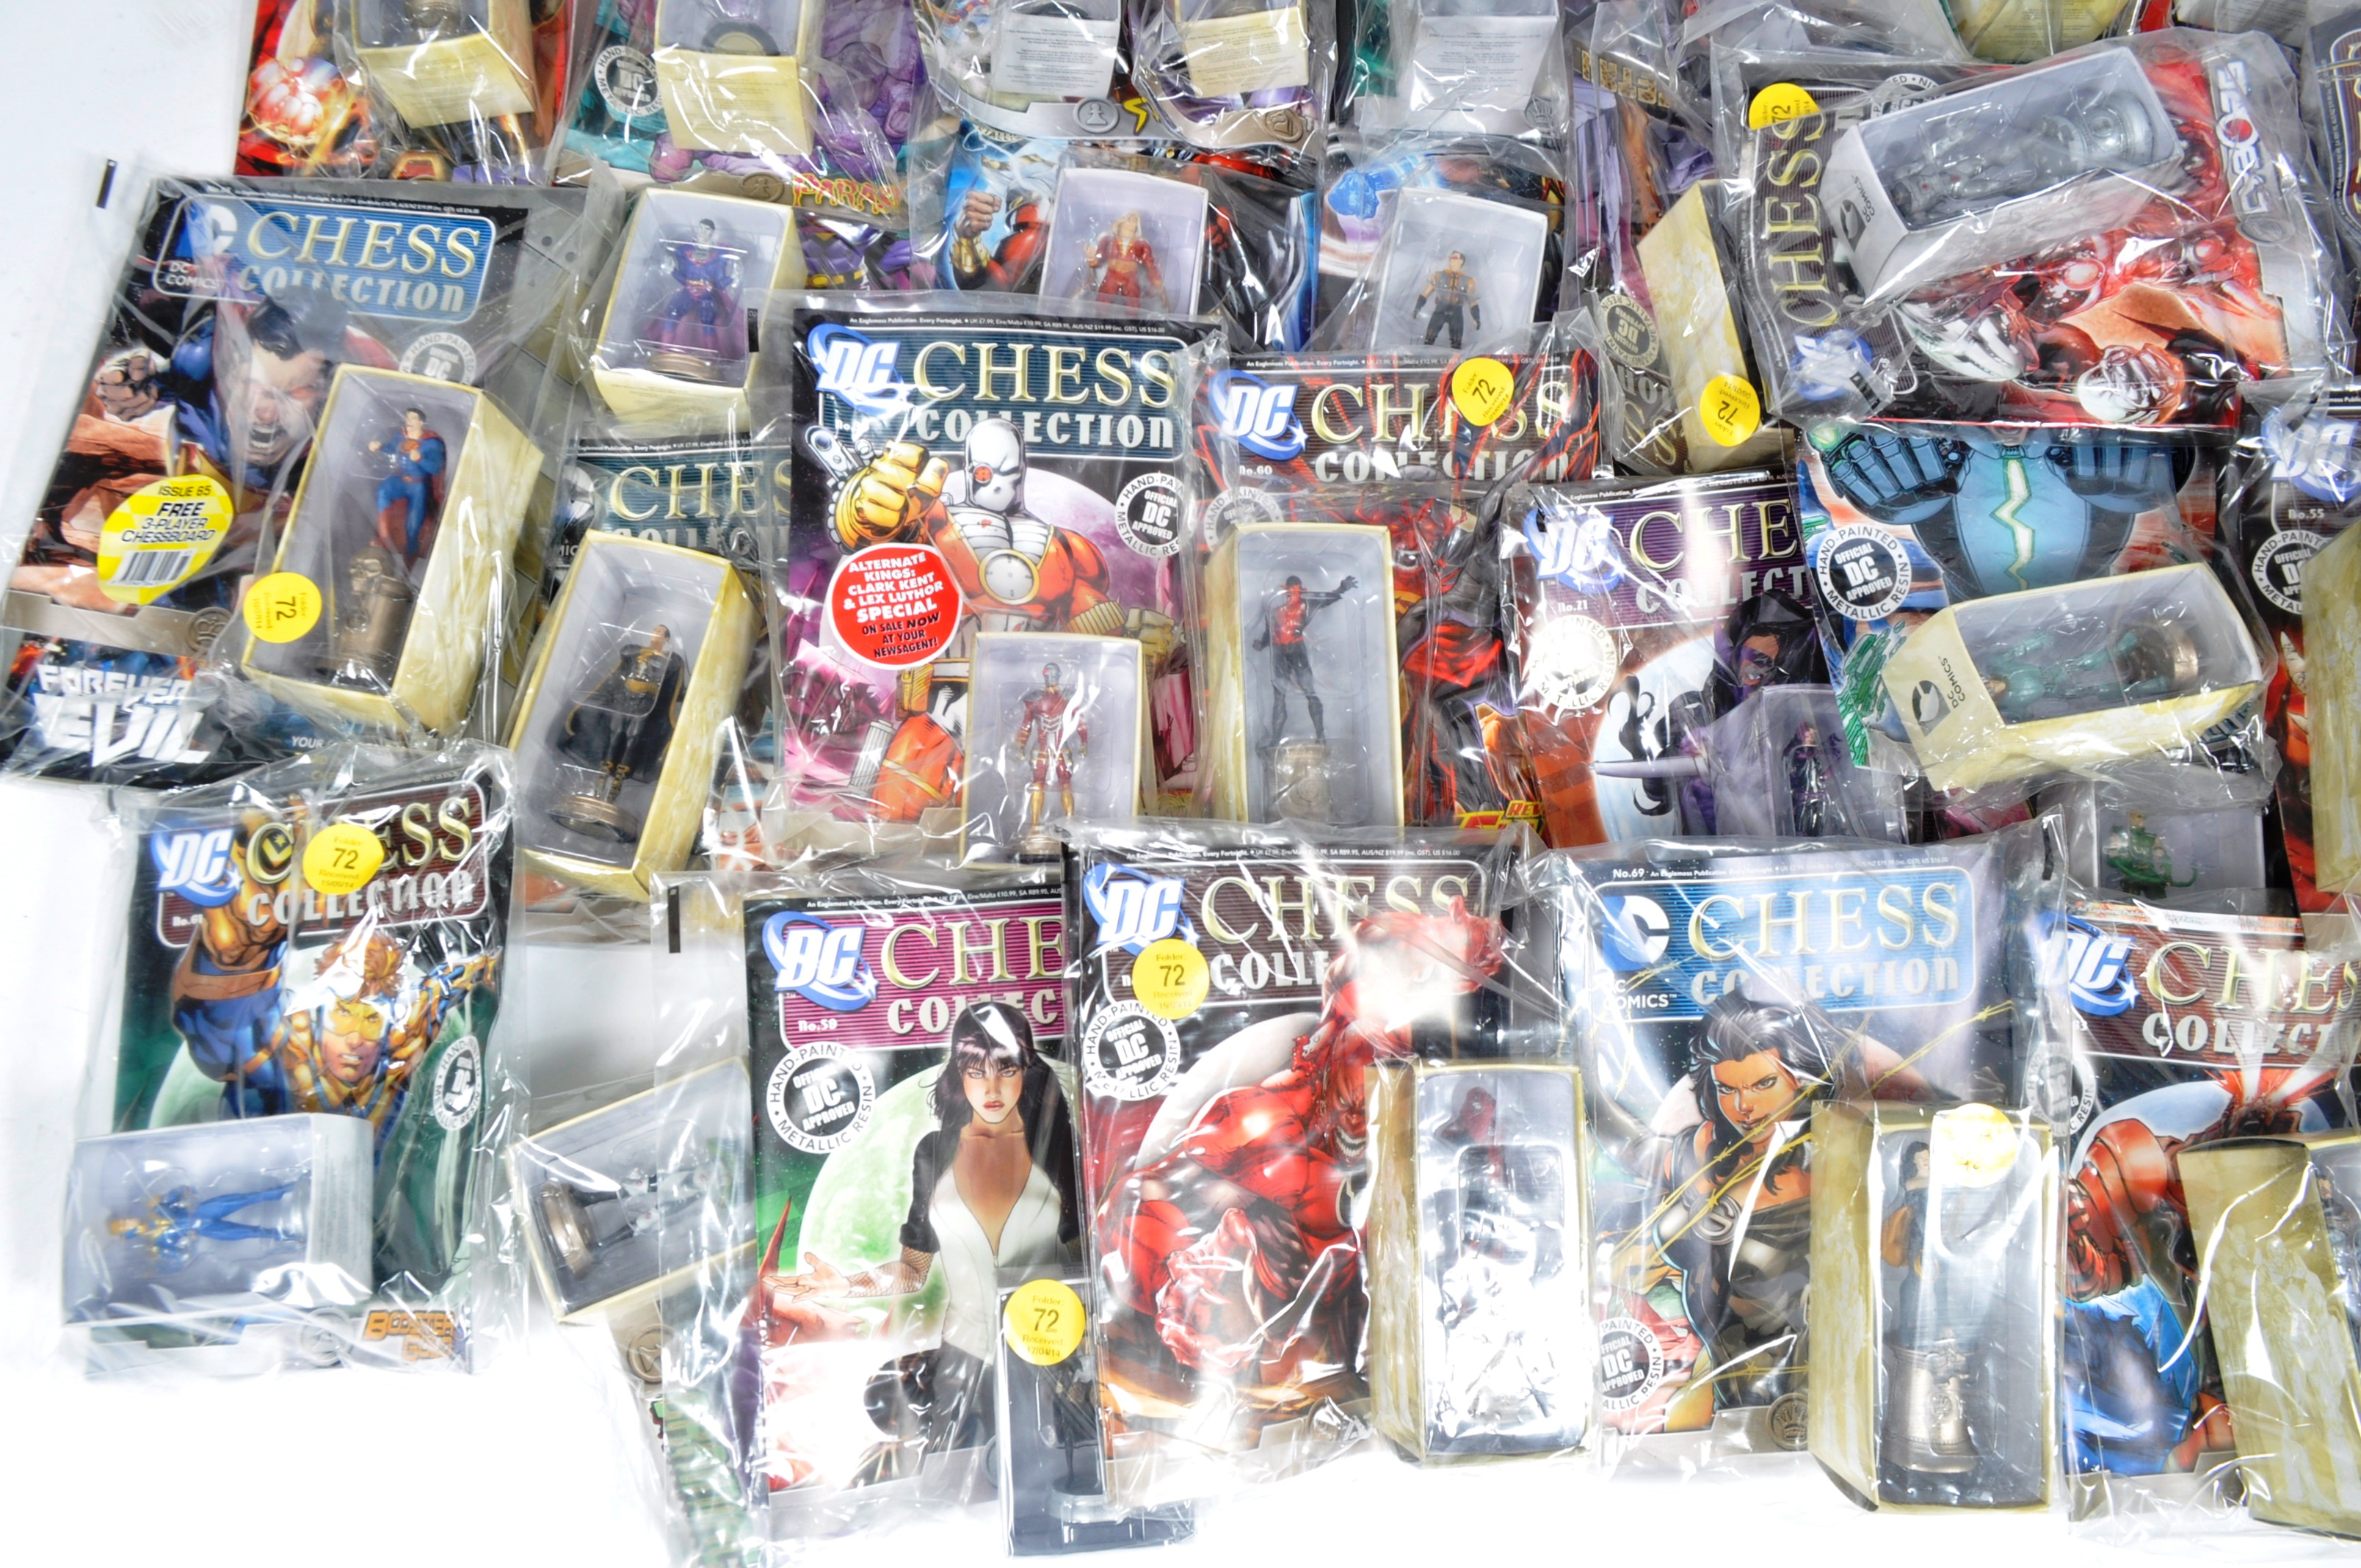 LARGE COLLECTION OF ASSORTED DC COMICS COLLECTIBLE CHESS PIECES - Image 2 of 6